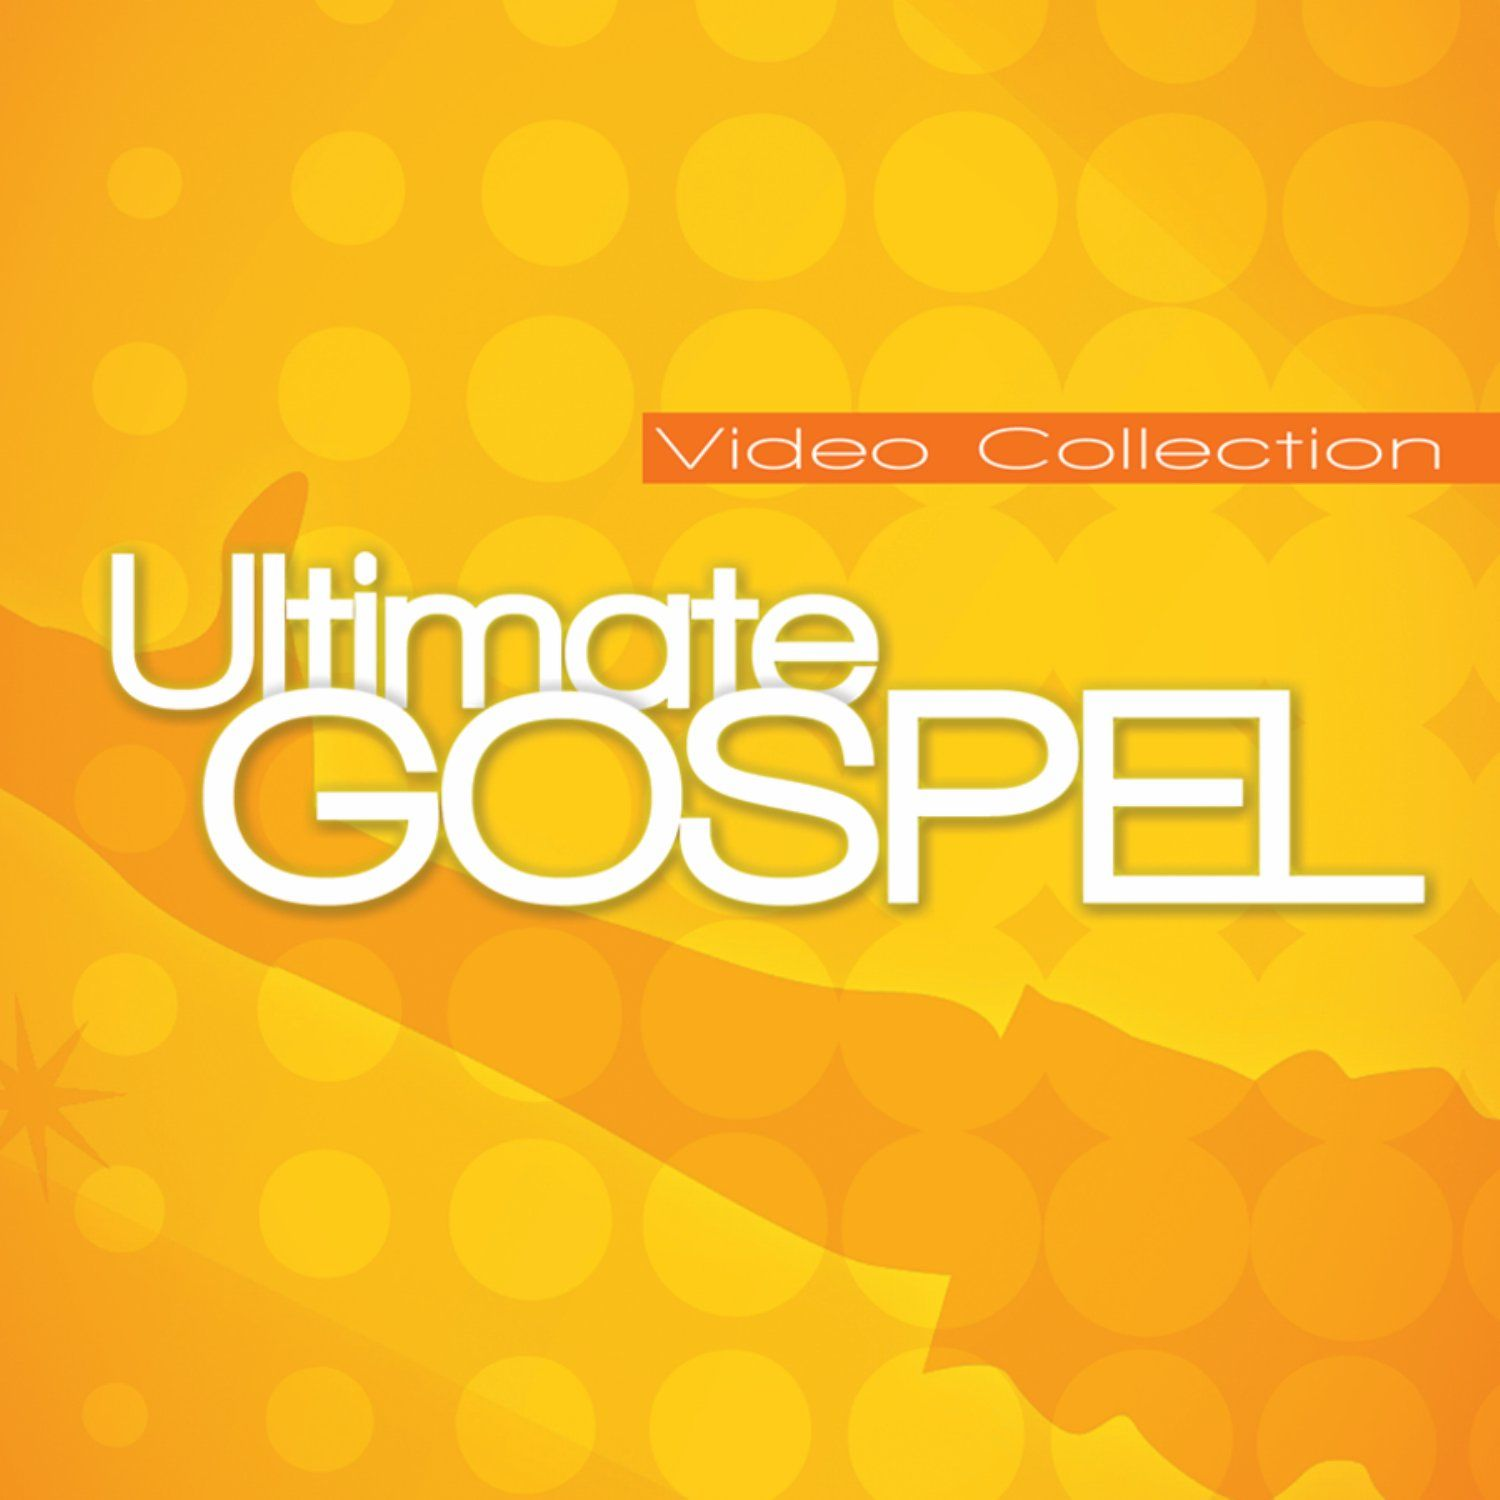 Ultimate Gospel Video Collection